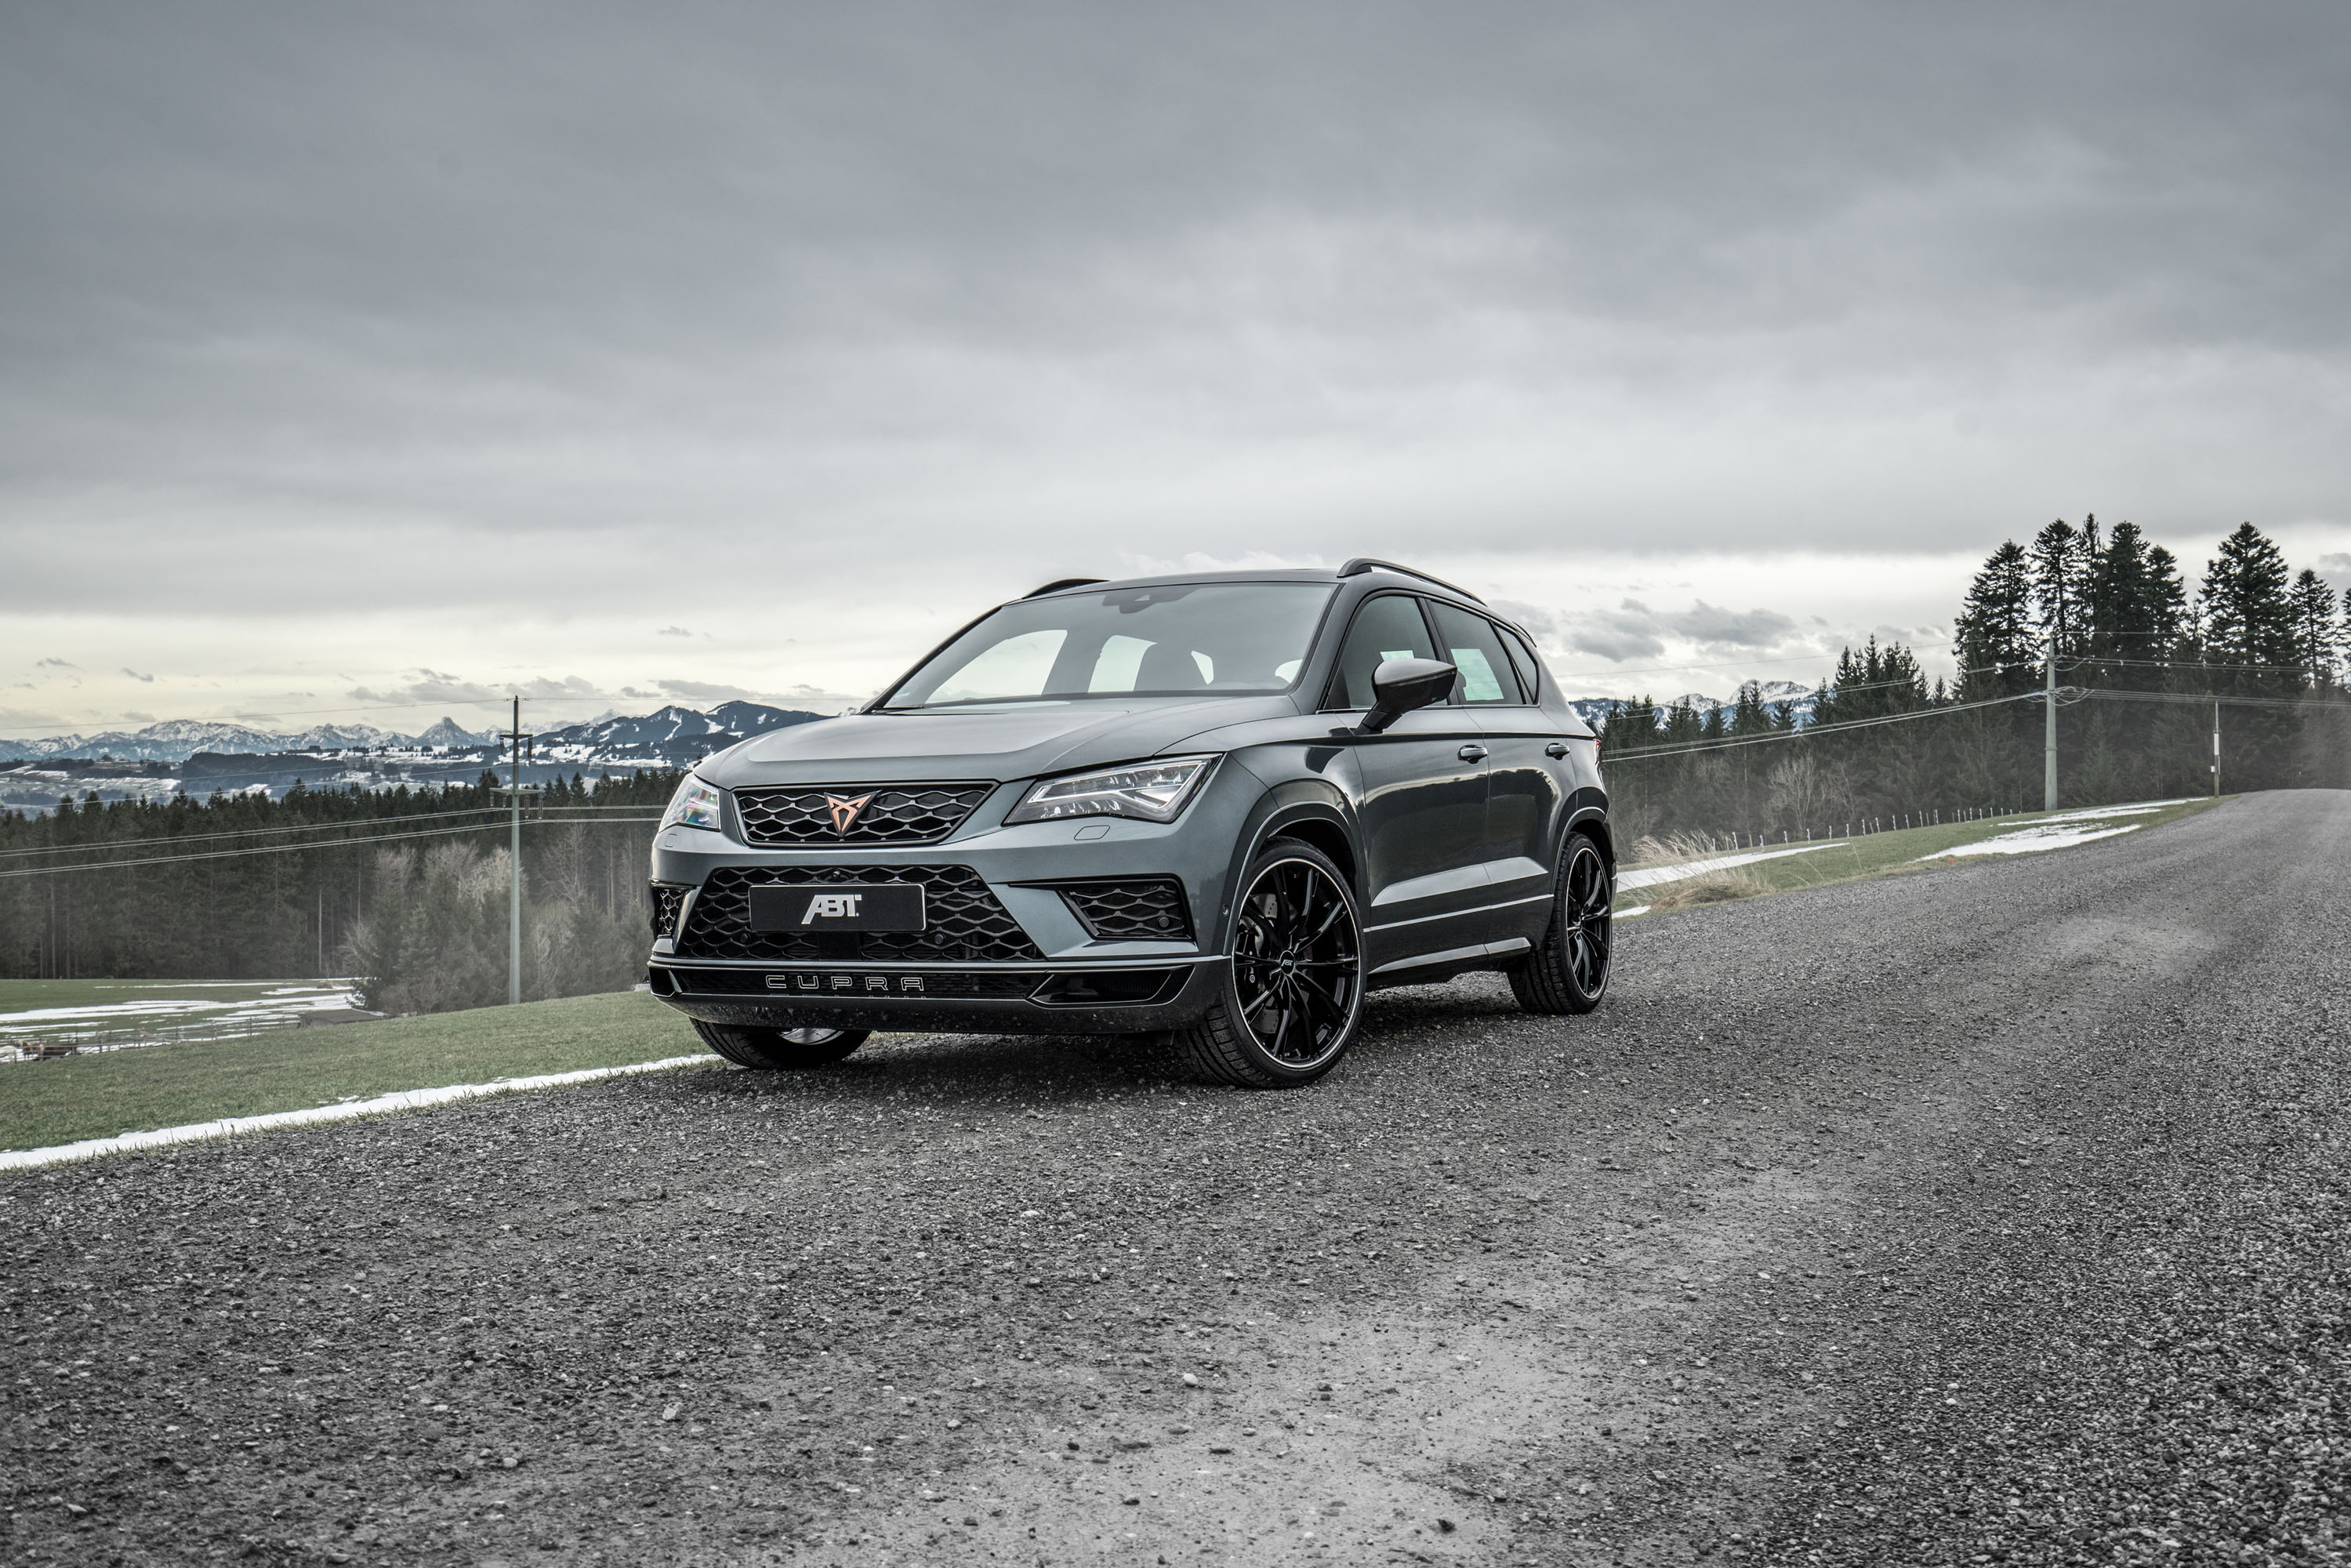 ABT Cupra Ateca Limited Edition photo #1